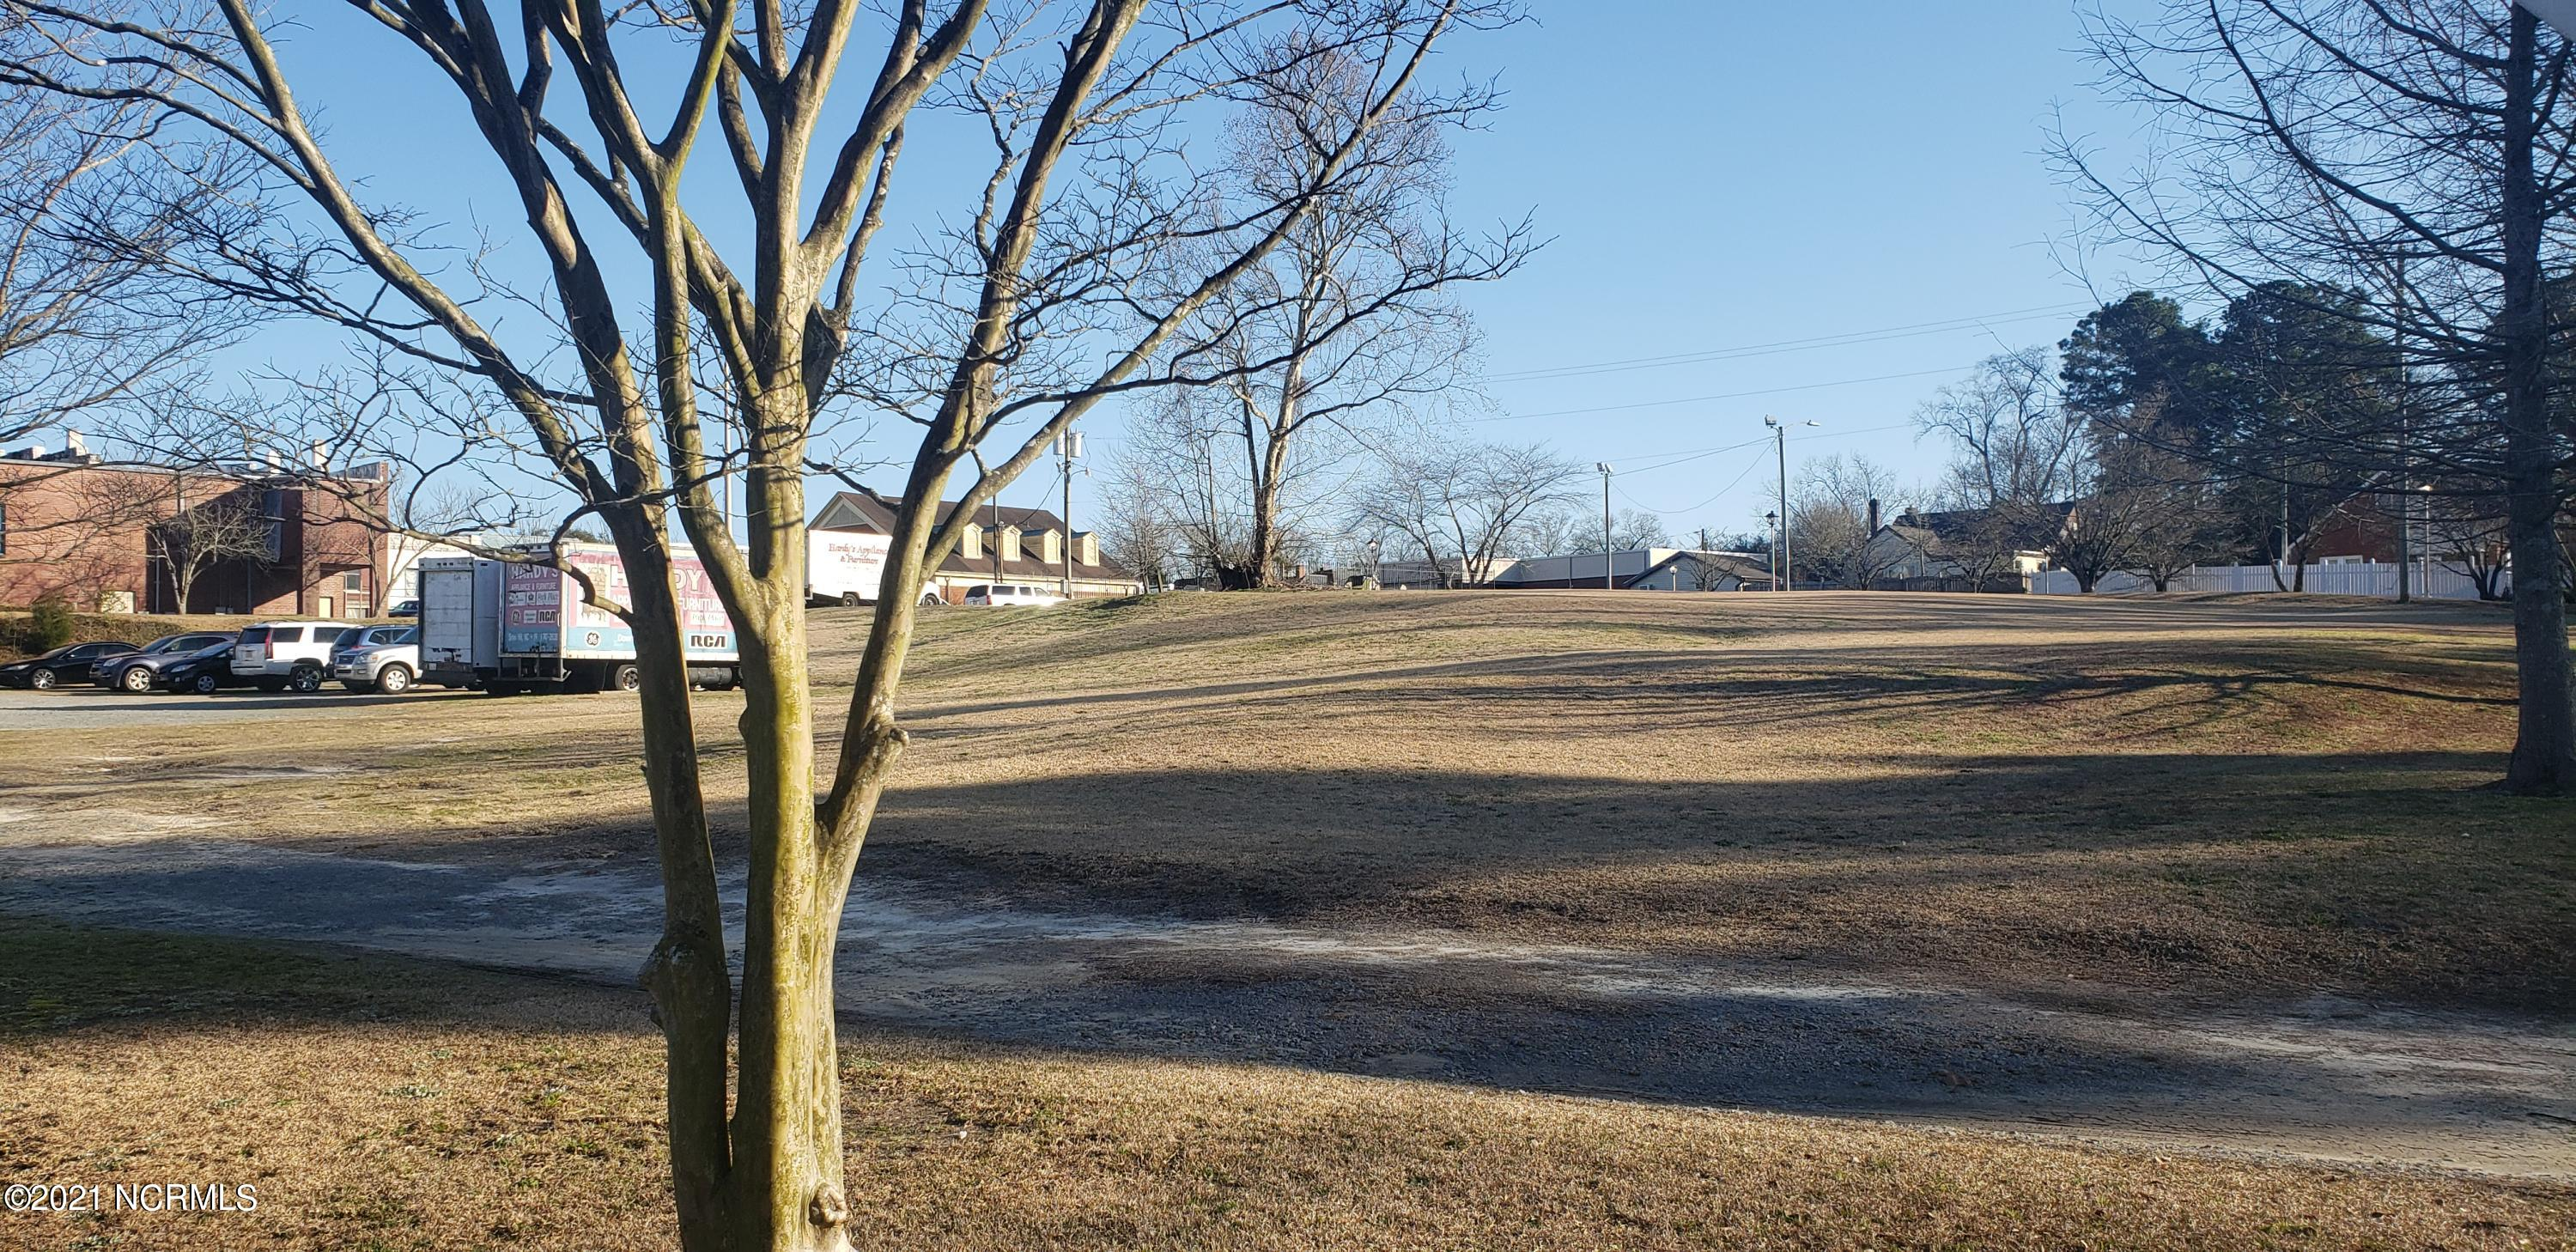 0 Second Street, Snow Hill, North Carolina 28580, ,Residential land,For sale,Second,100261643